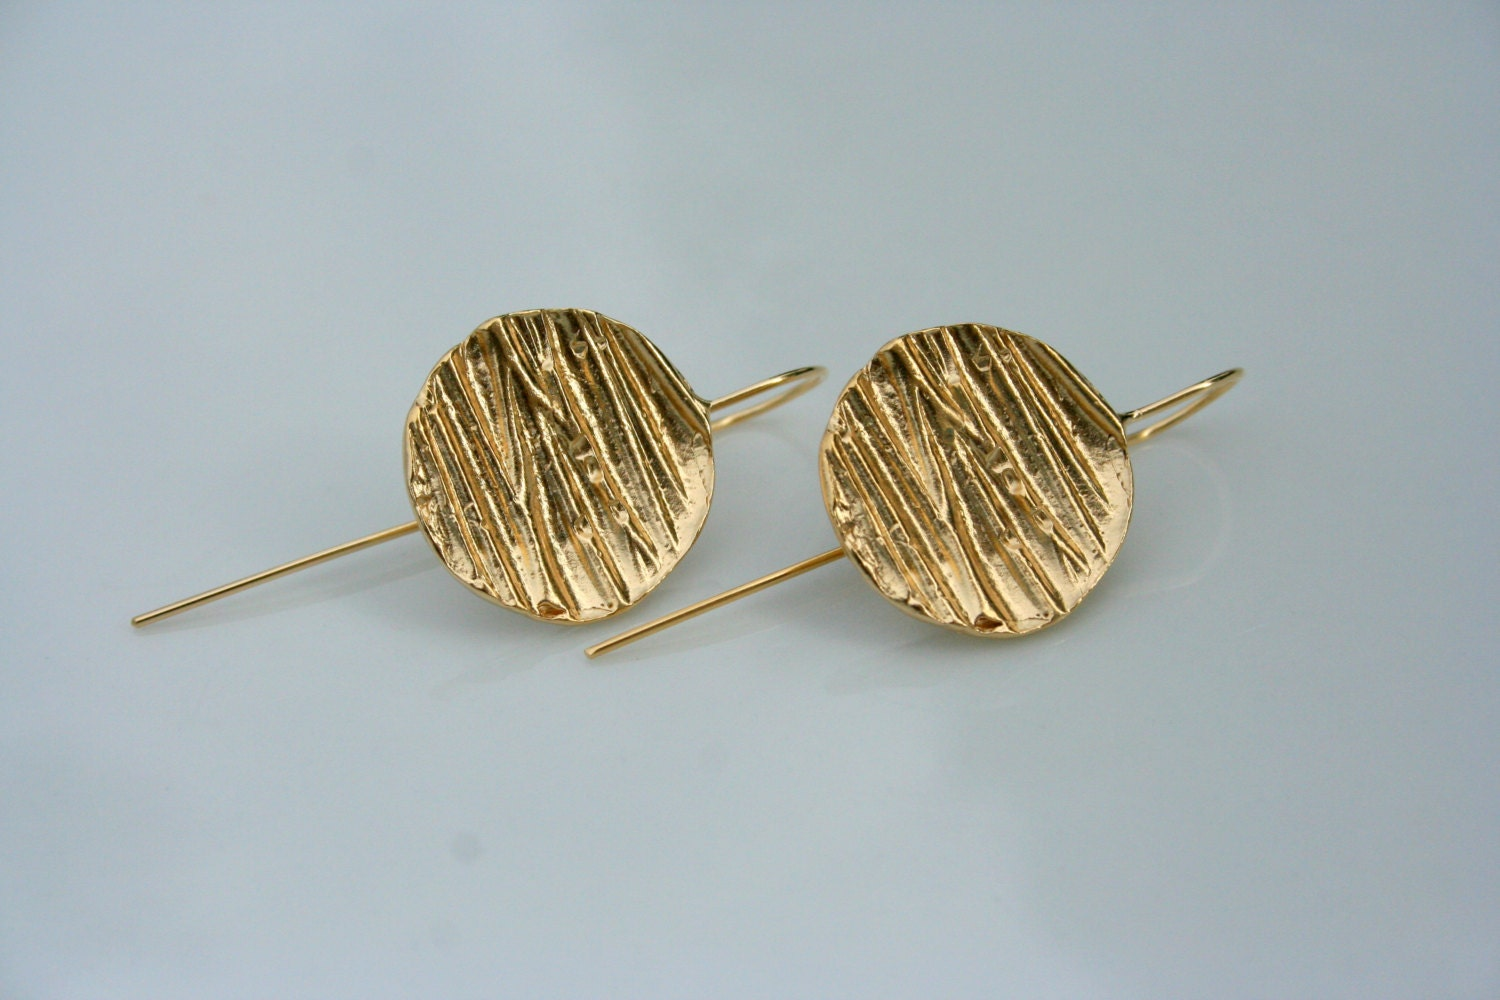 Gold Coin earrings, Long gold earrings, gold dangles